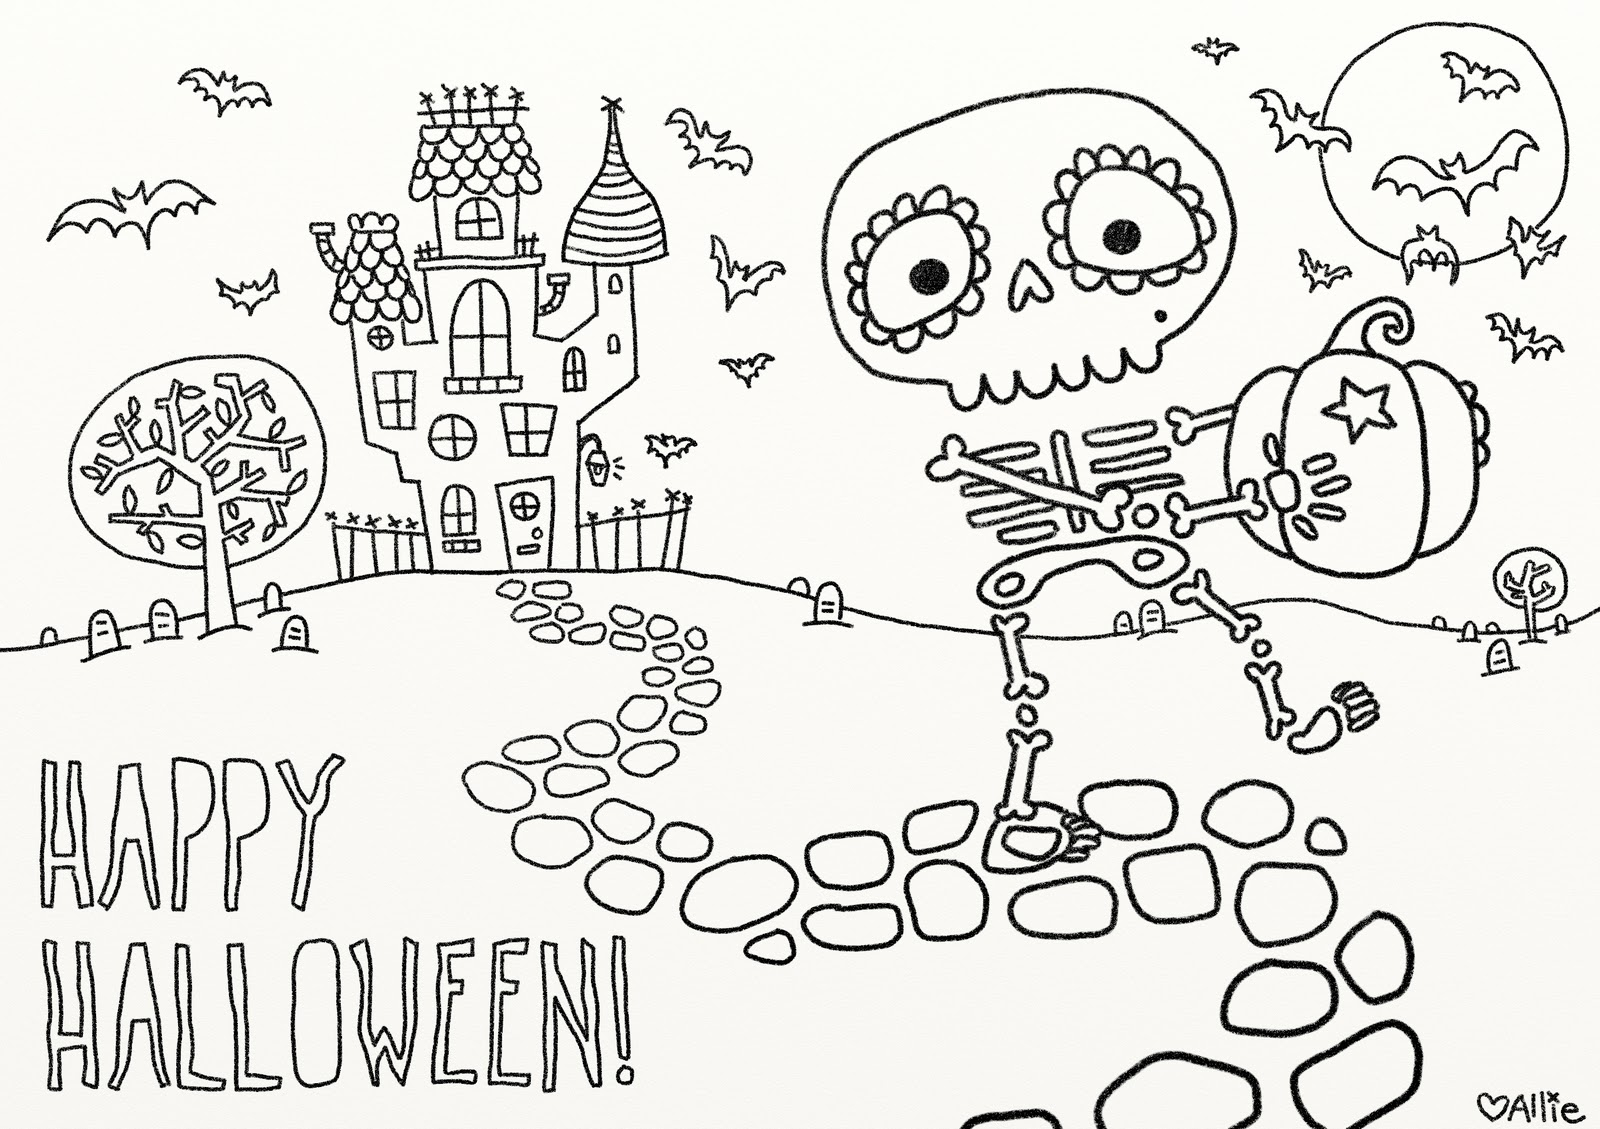 Halloween Coloring Pages Download 16a - Free Download